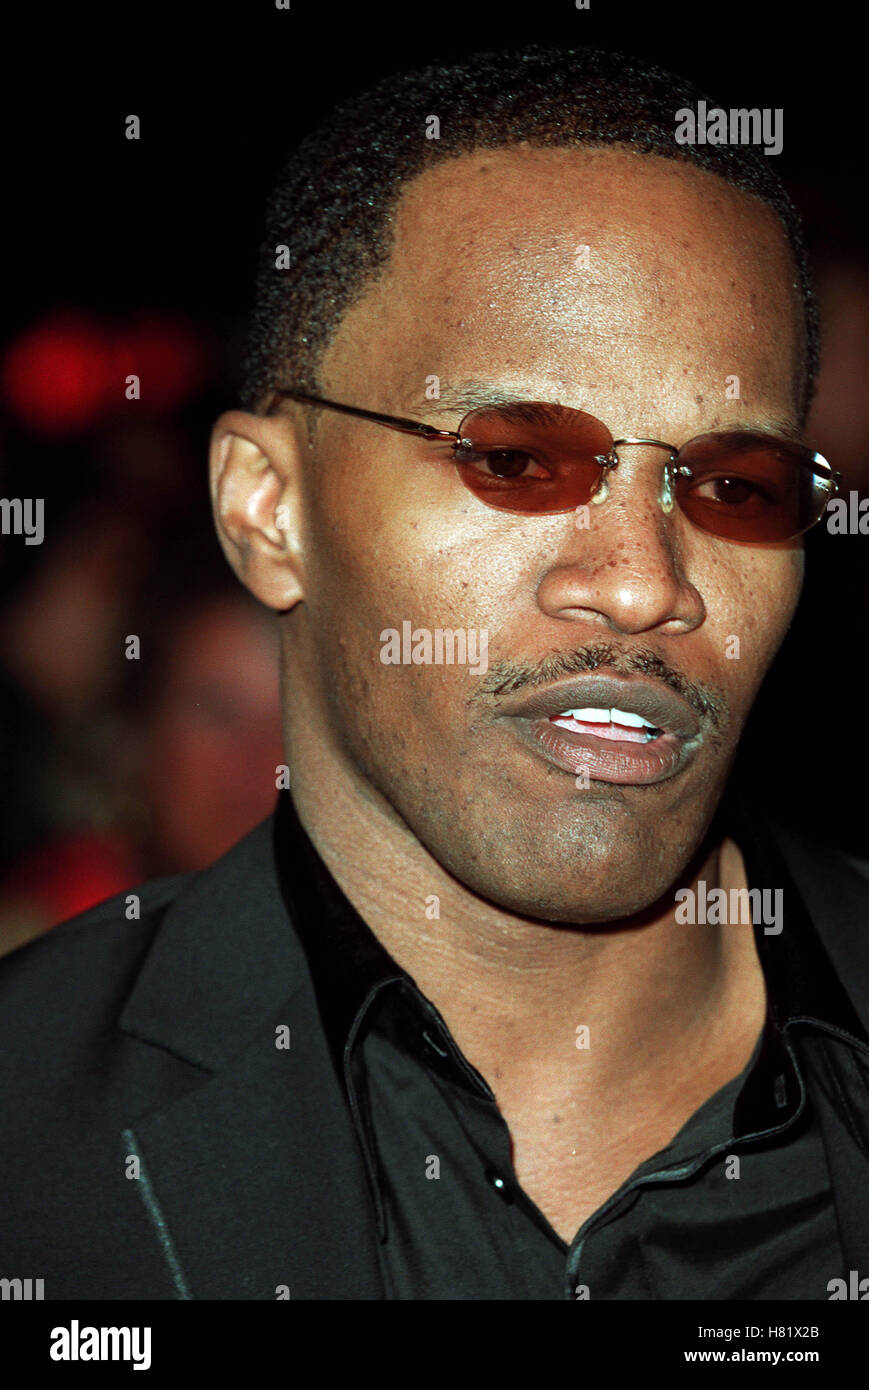 JAMIE FOXX MUHAMMAD ALI'S 60TH BIRTHDAY KODAK THEATRE LA USA 12 January 2002 - Stock Image